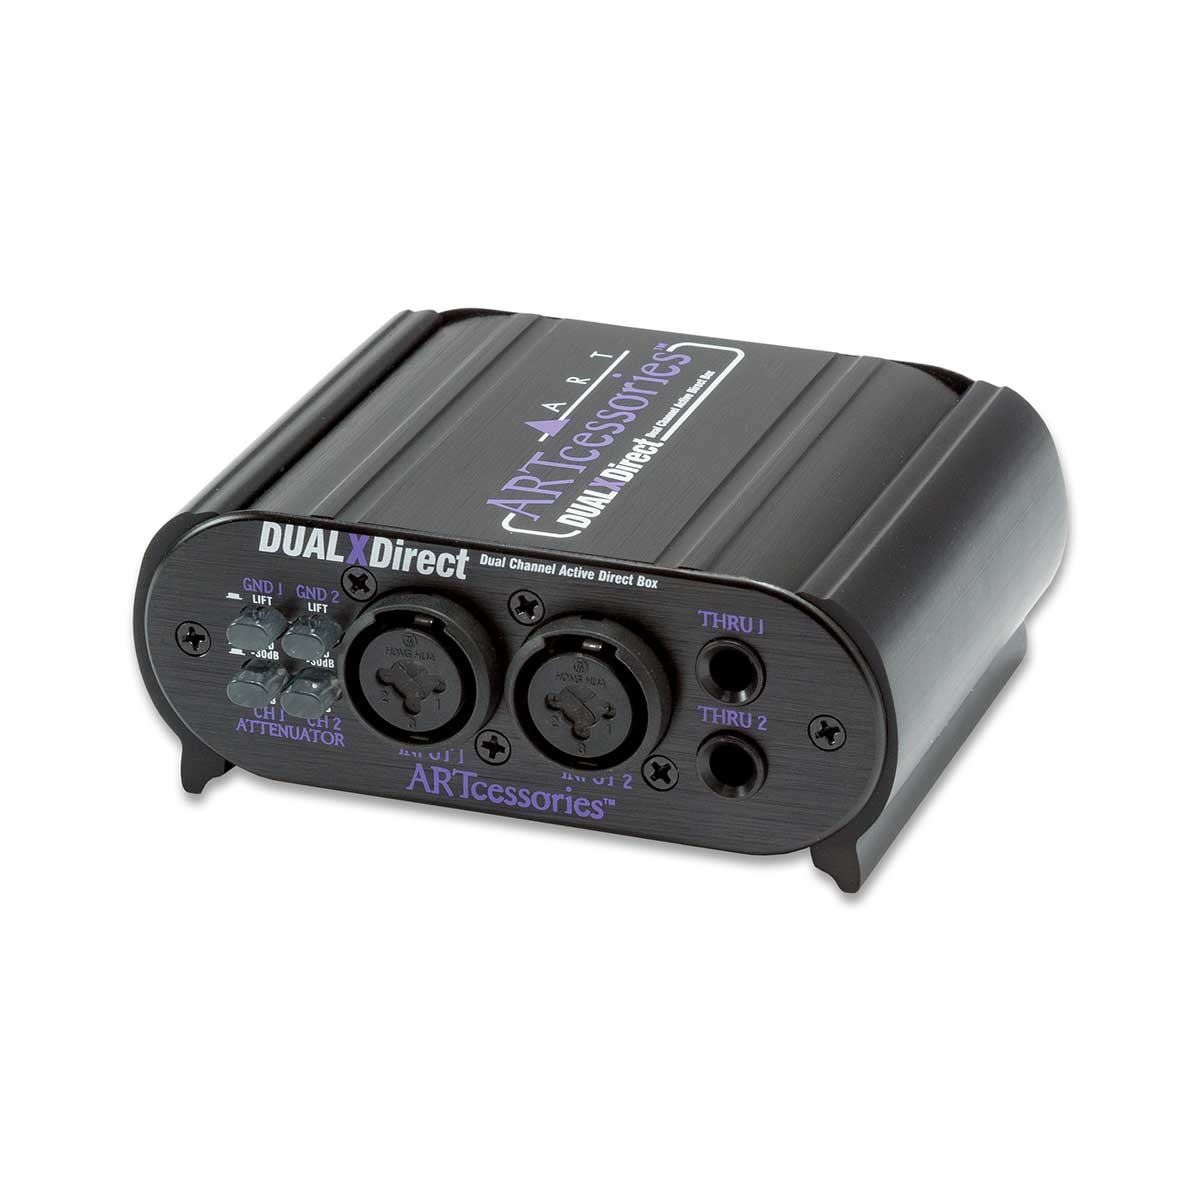 ART DUALXDirect Dual Channel Active Direct Box